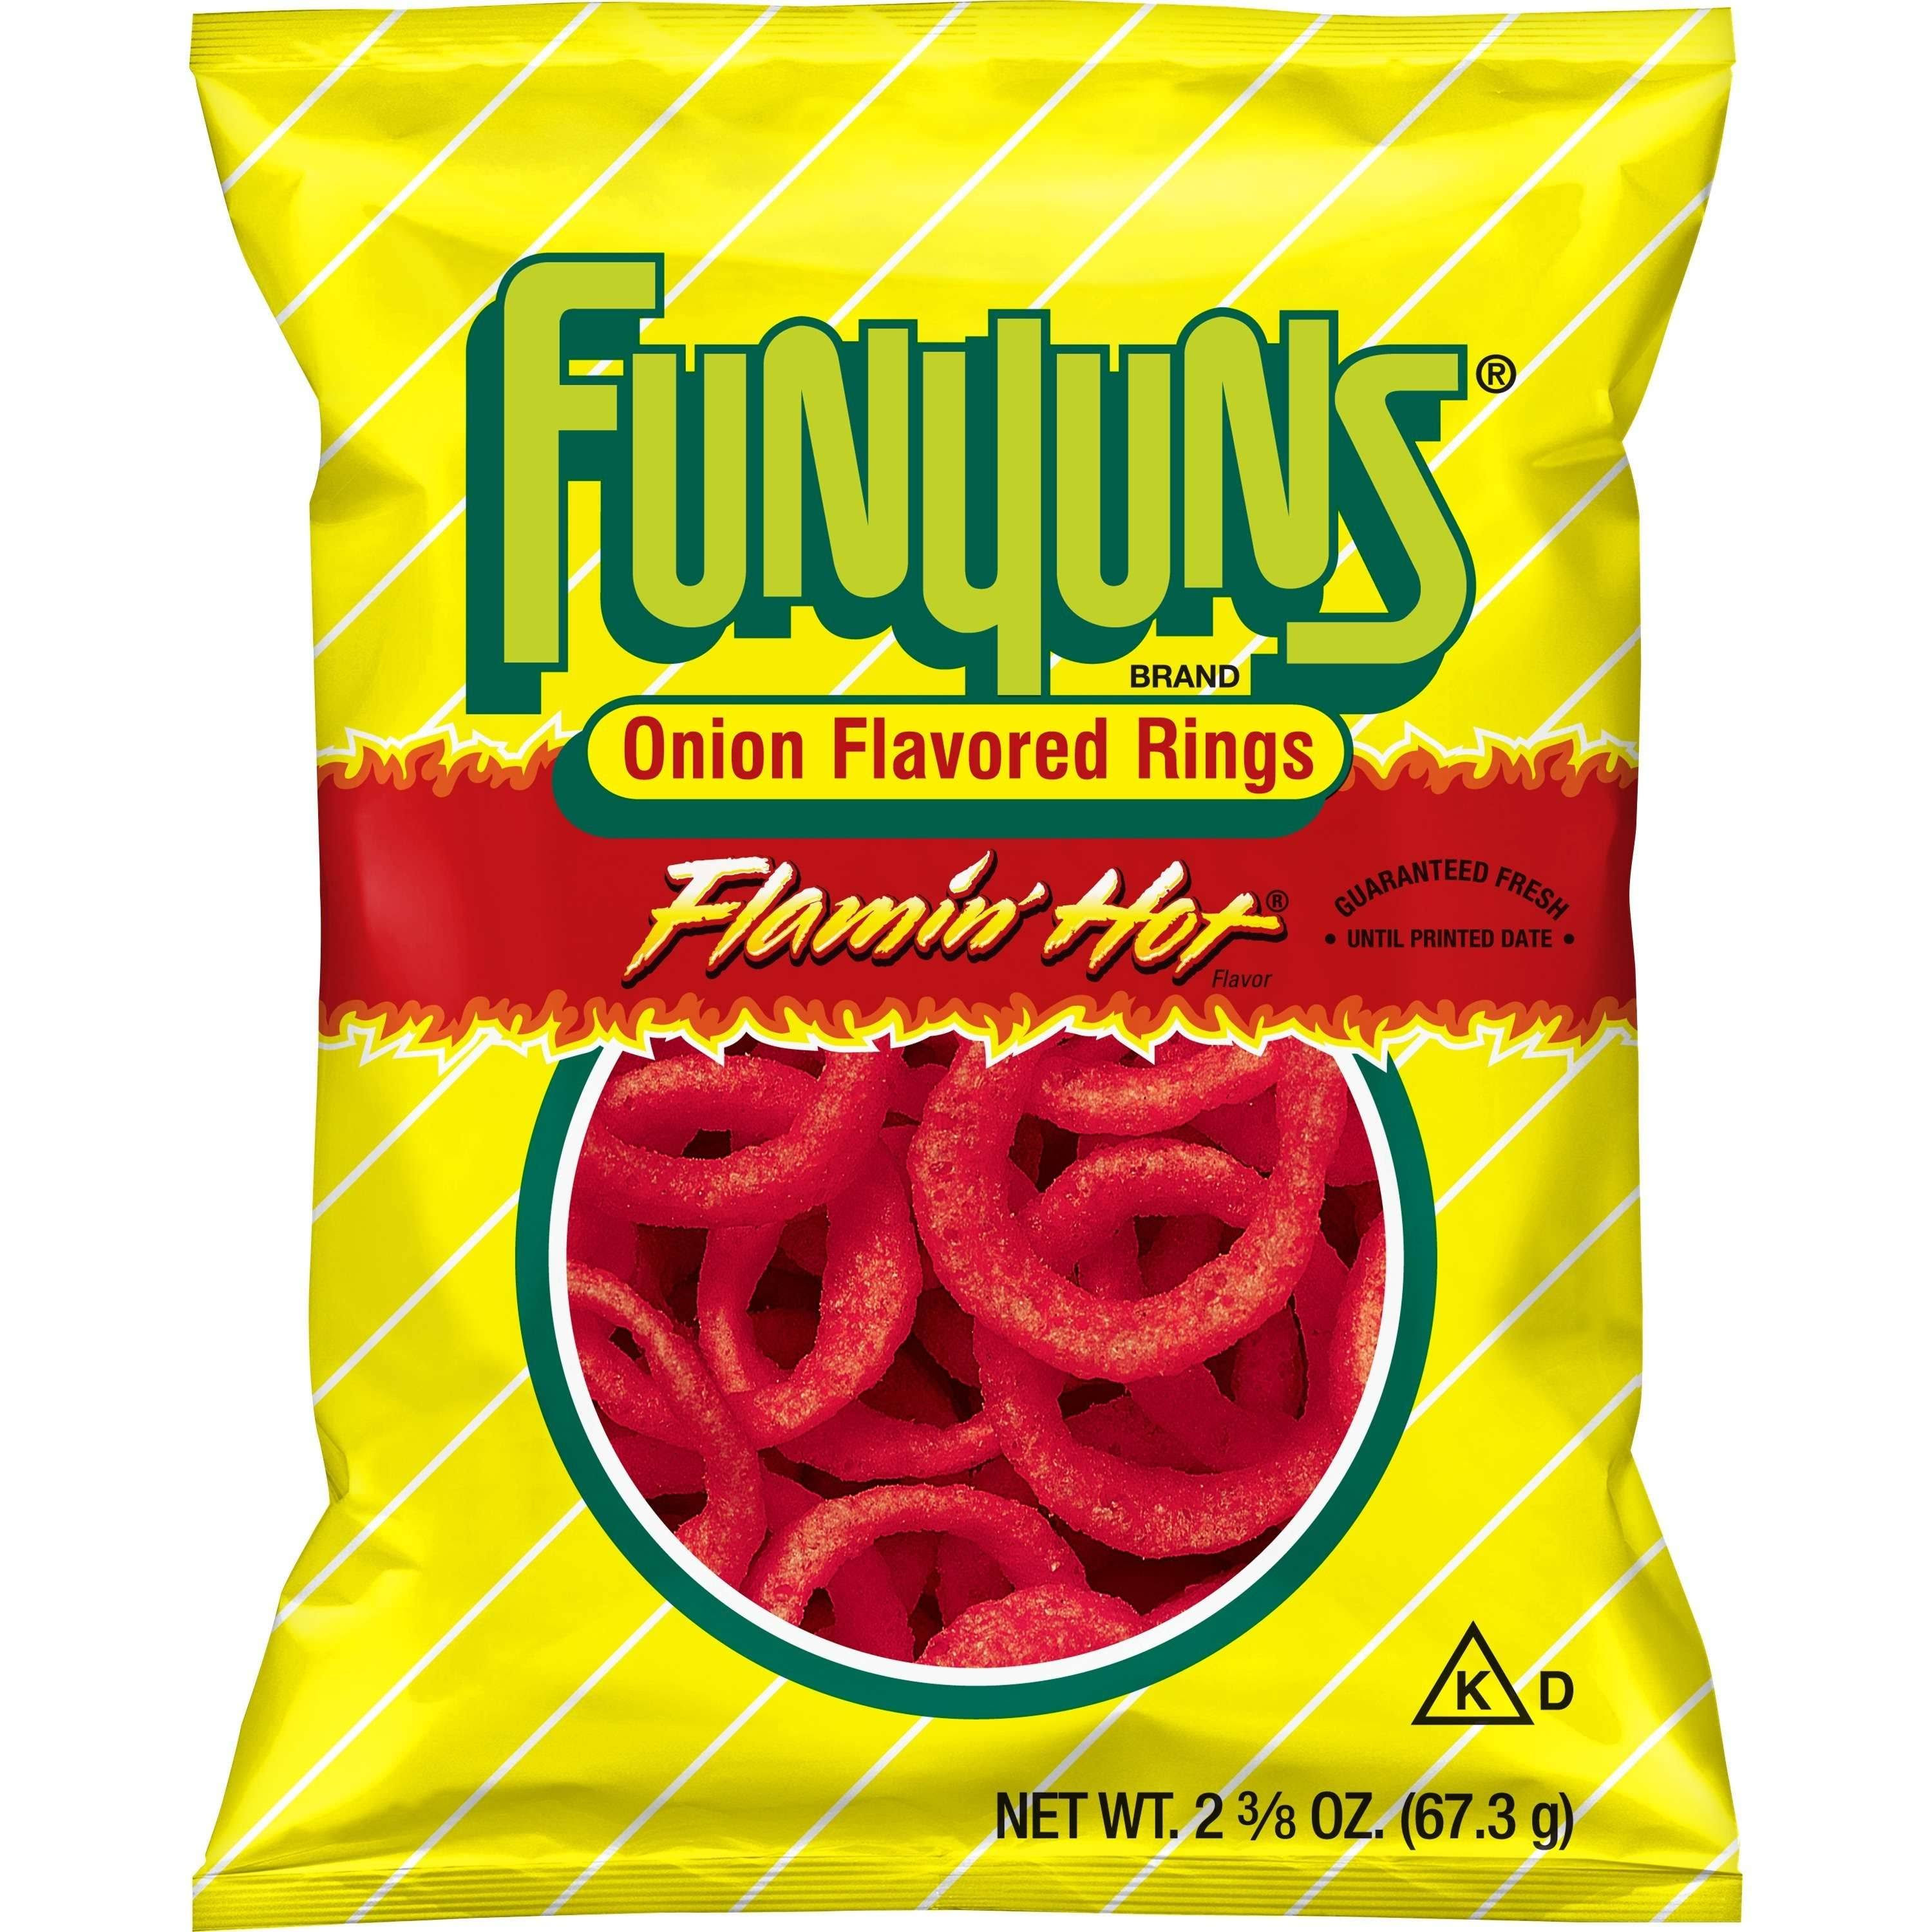 Funyuns Onion Flavored Rings Snack - Flamin' Hot, 2.375oz